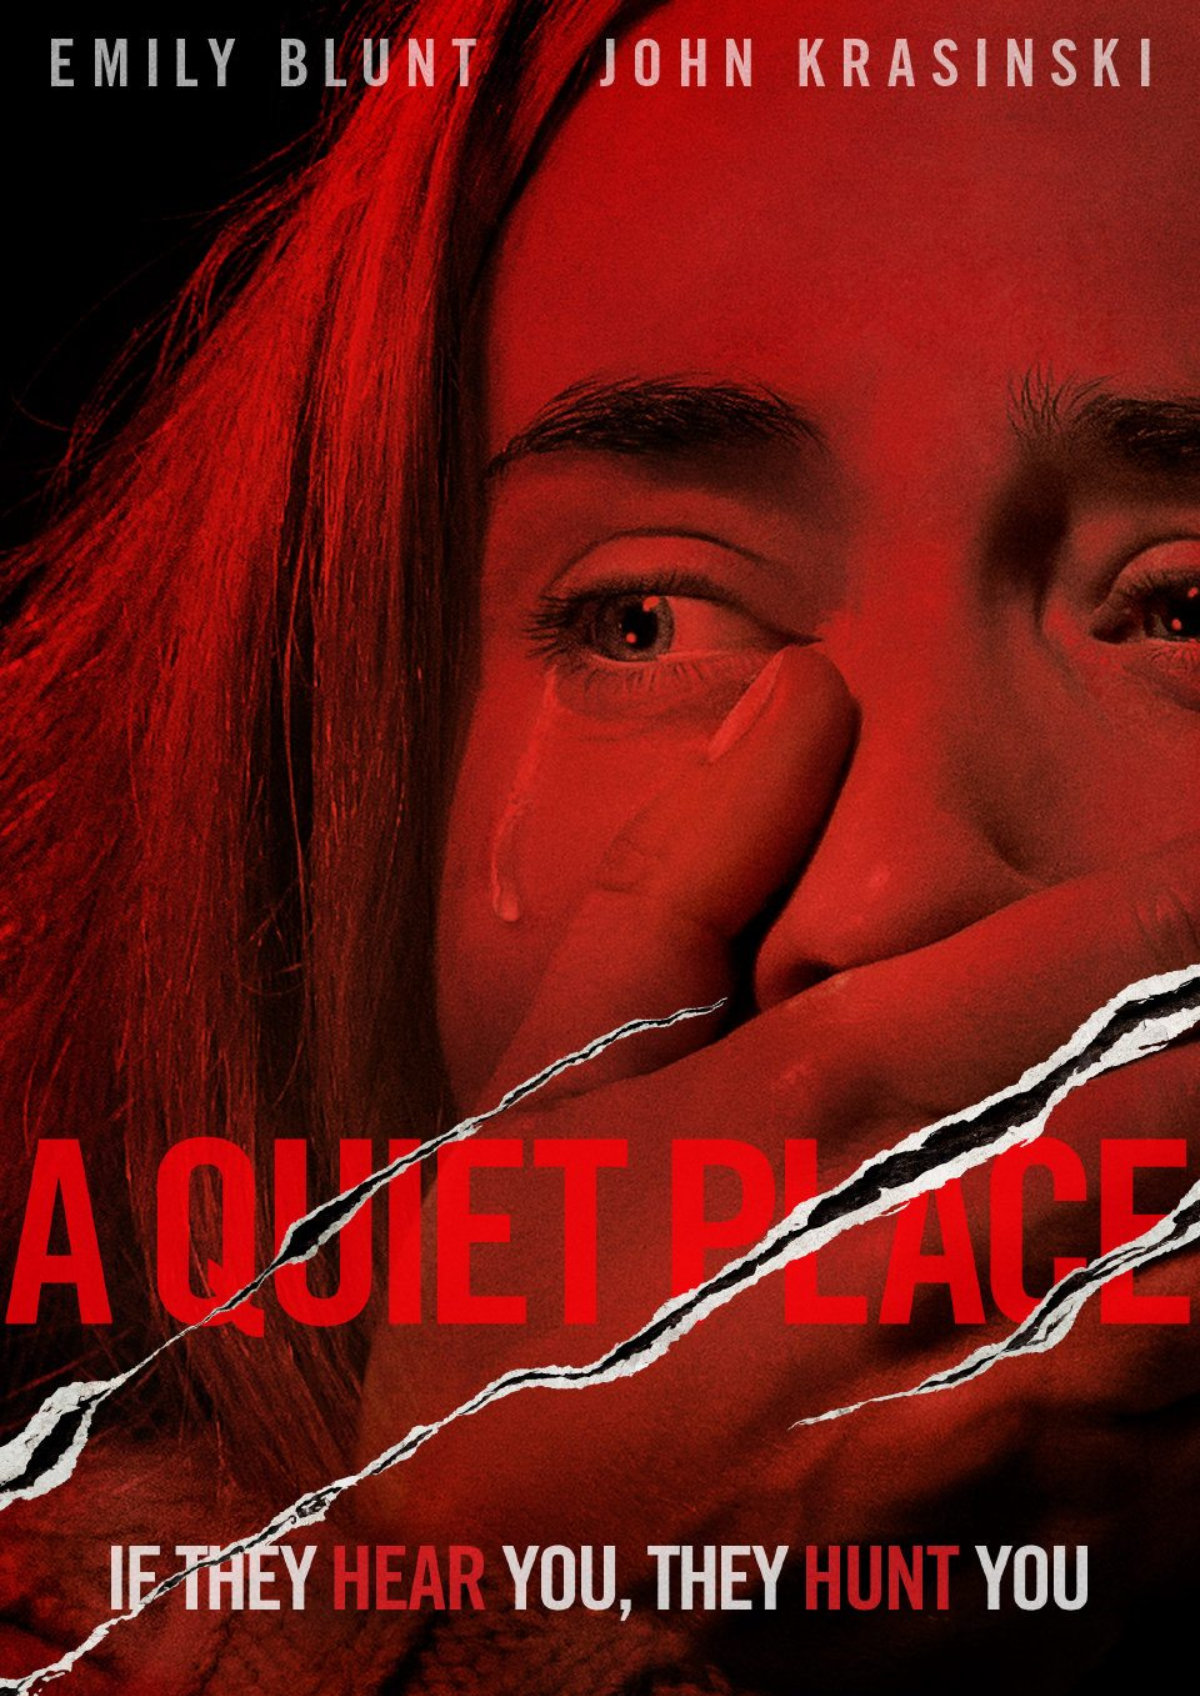 'A Quiet Place' movie poster